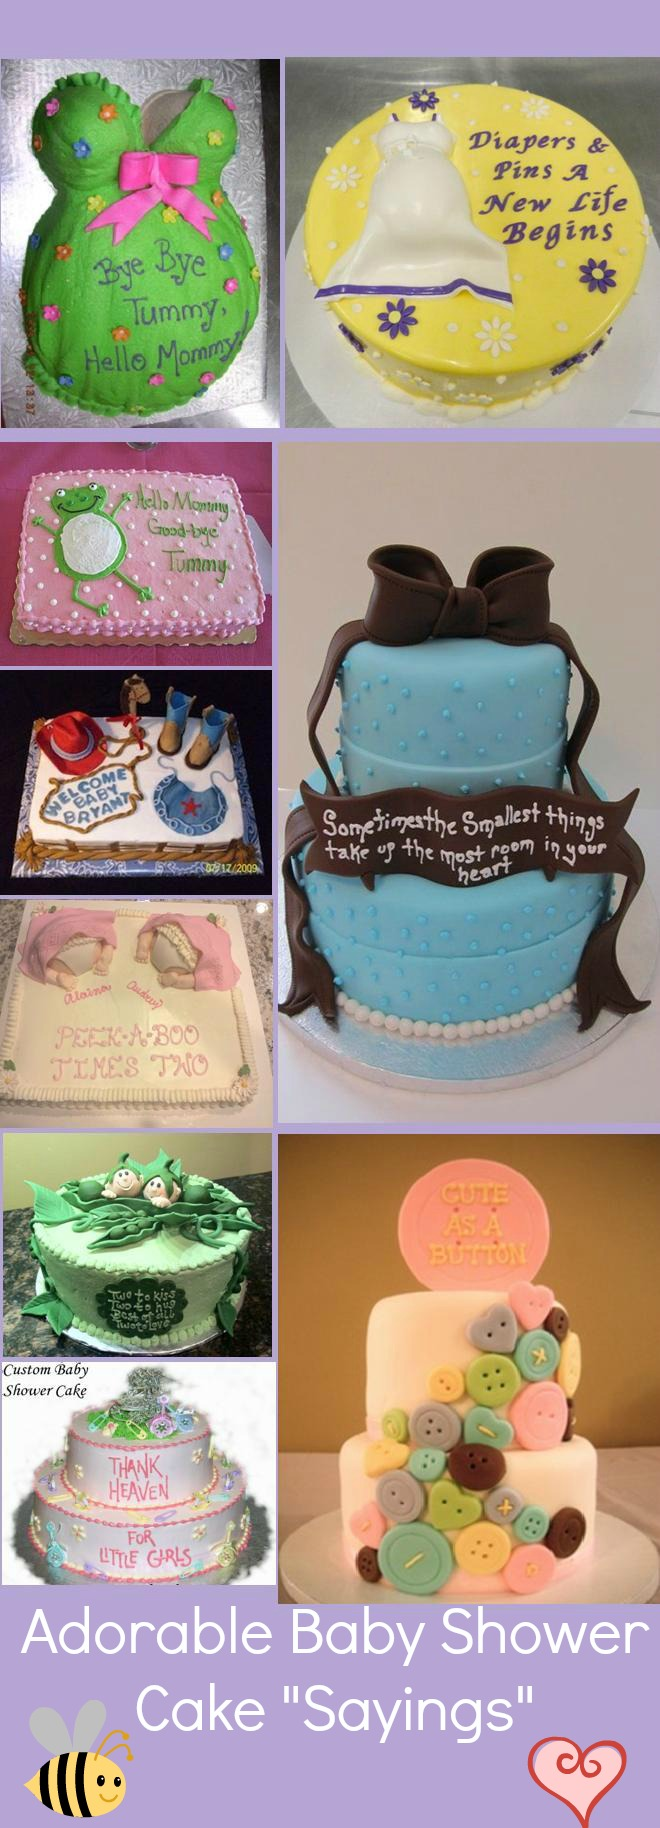 Baby Shower Cake Sayingsn